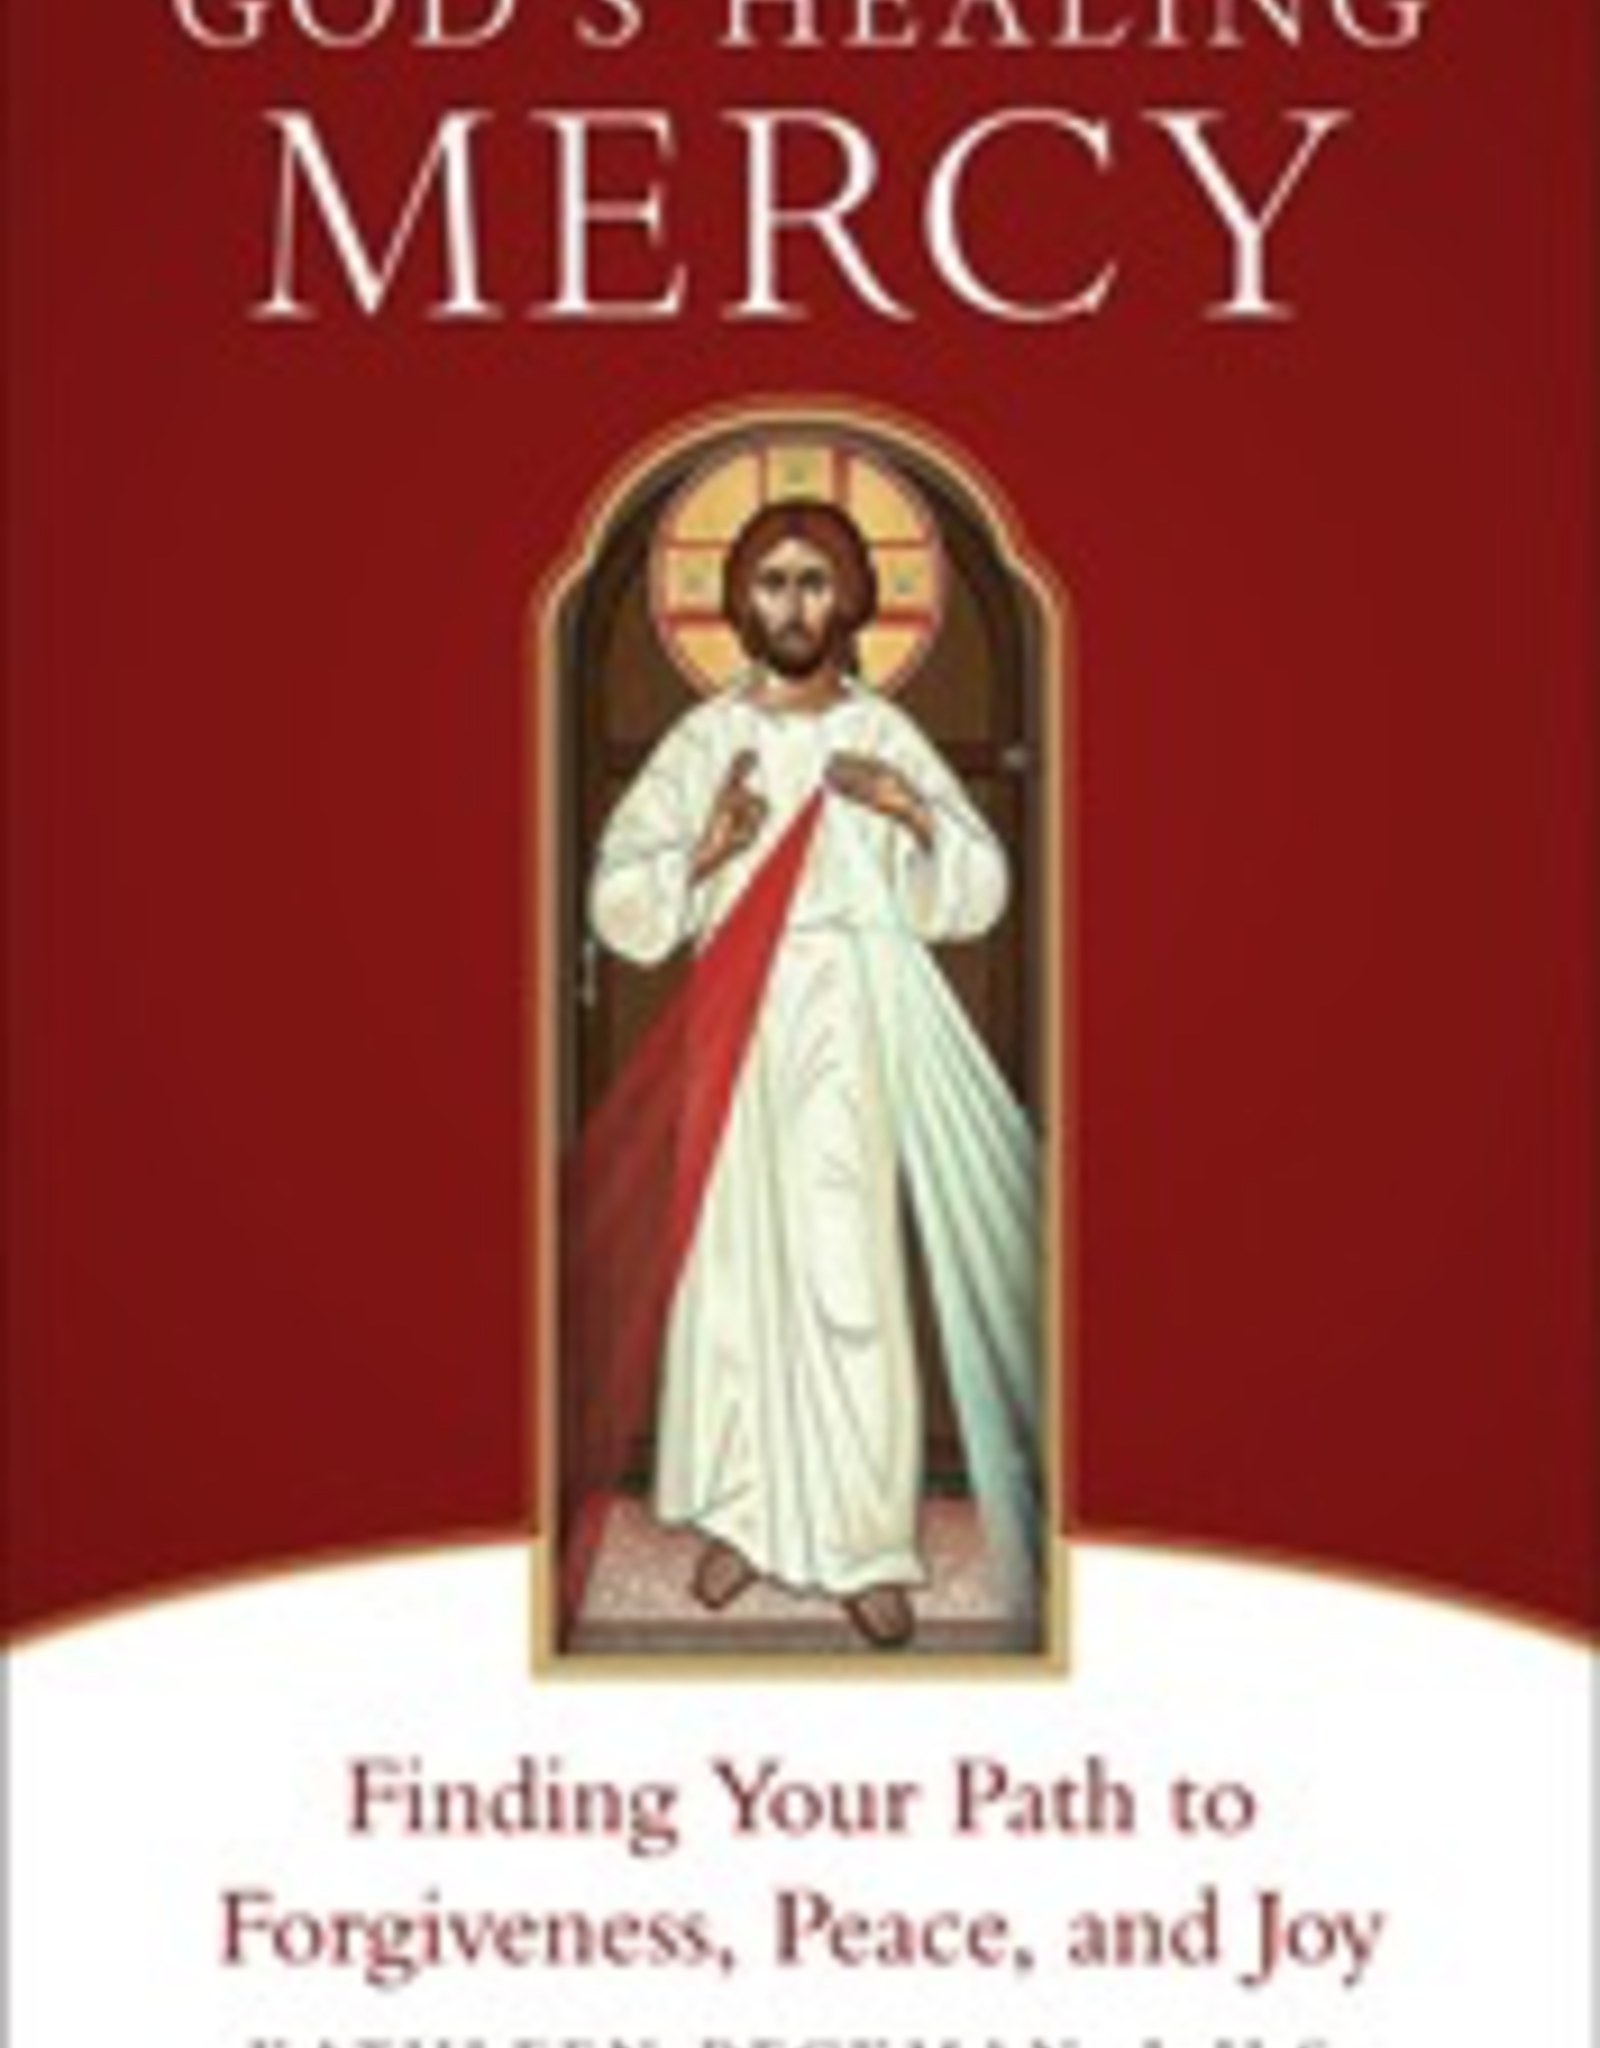 Sophia Institute God's Healing Mercy:  Finding Your Path to Forgiveness, Peace and Joy, by Kathleen Beckman (paperback)